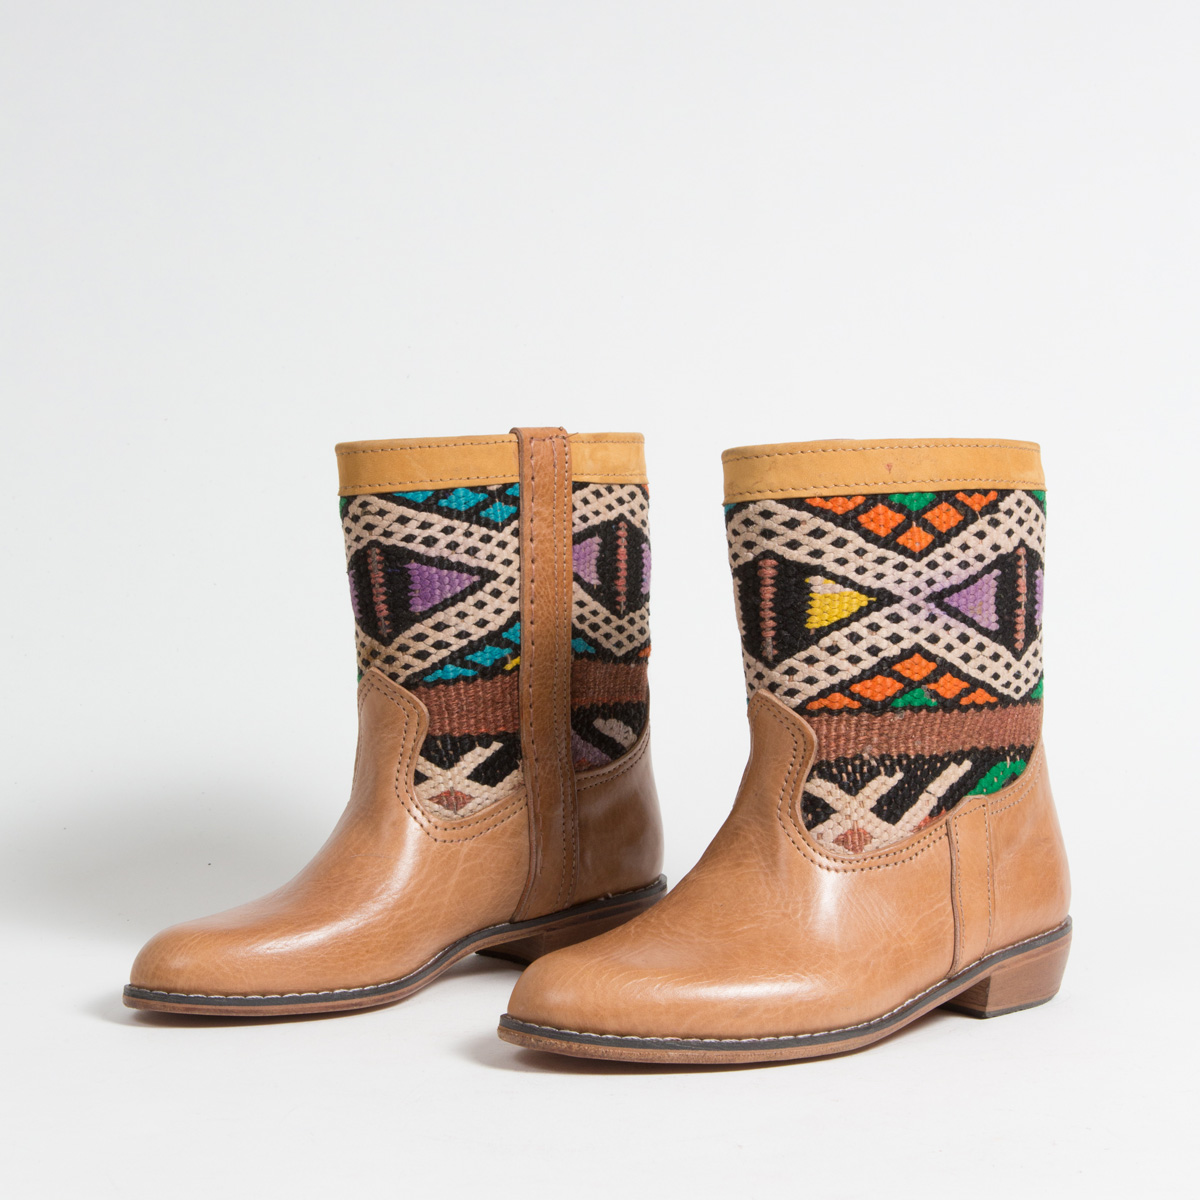 Bottines Kilim cuir mababouche artisanales (Réf. LOC2-37)